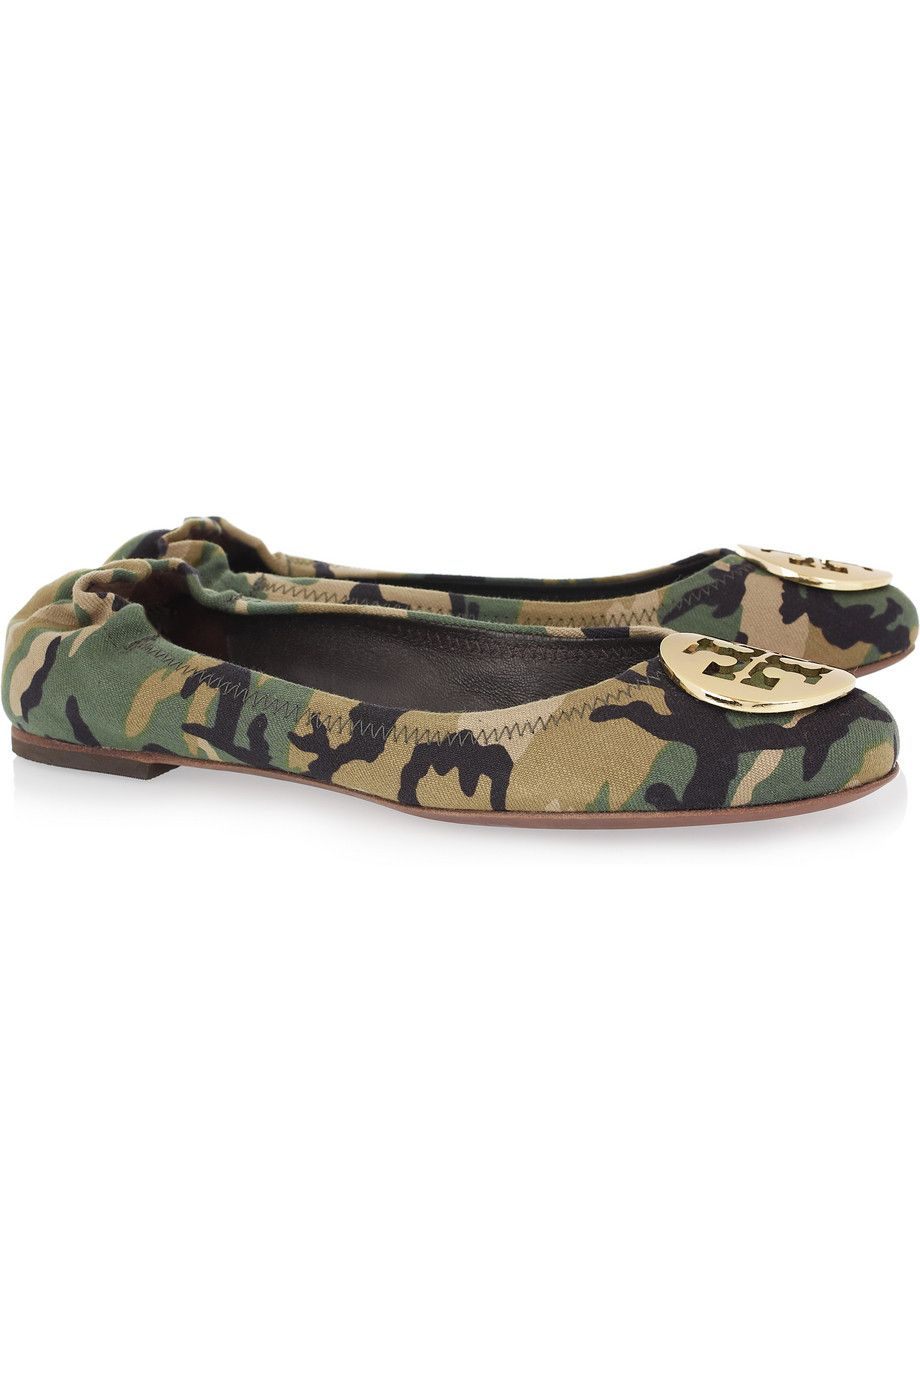 outlet enjoy Tory Burch Reva Camouflage Flats Inexpensive sale online nE0mdN